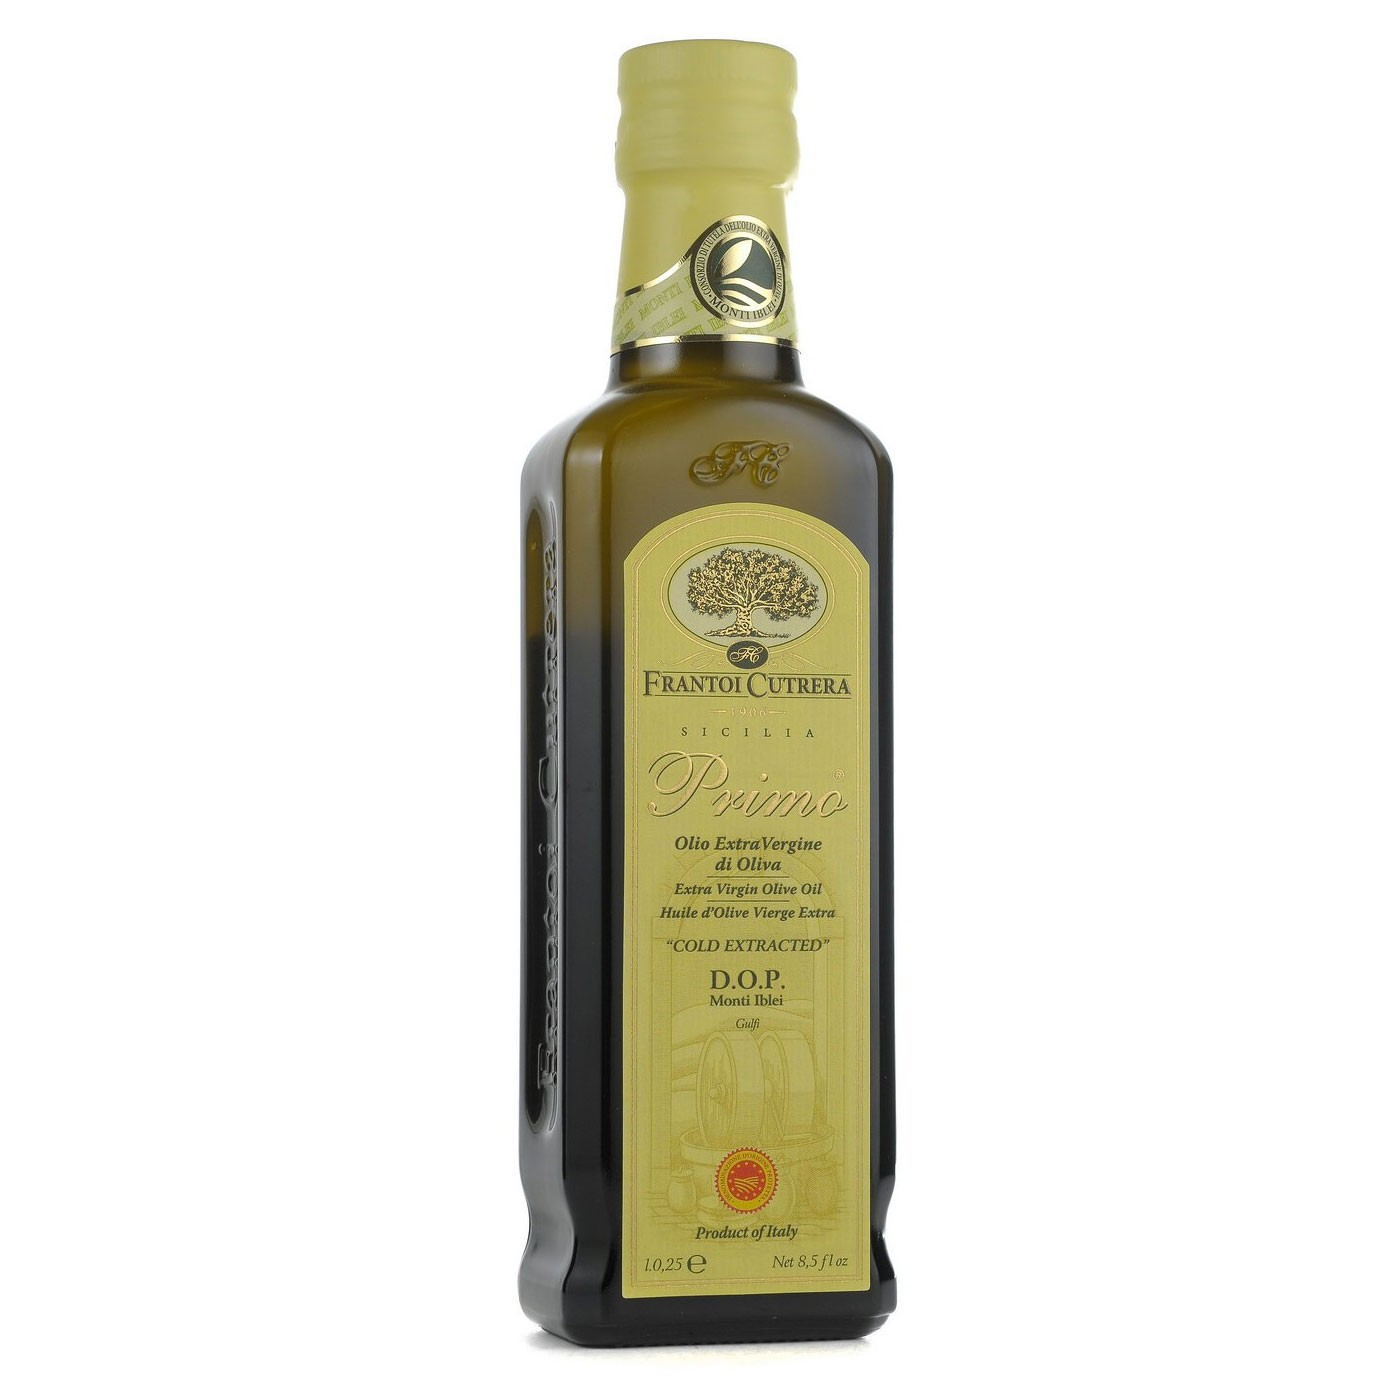 Primo Monte Iblei Extra Virgin Olive Oil DOP 8.5 oz